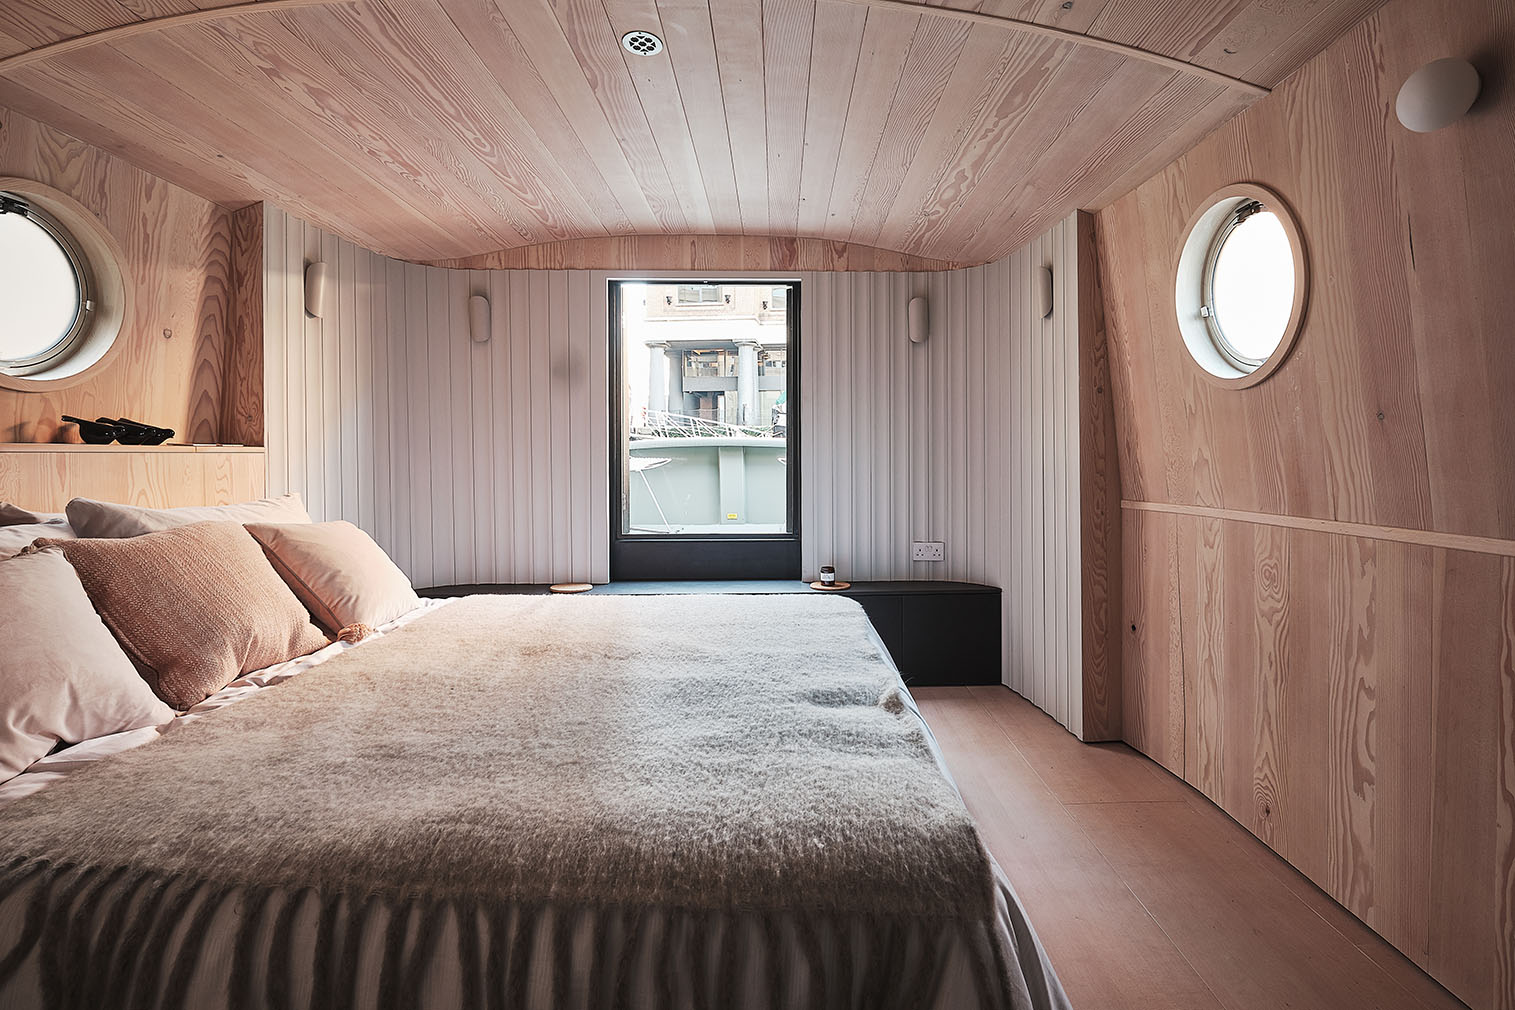 The Dusky Parakeet house boat designed by 31/44 Architects. It's for sale via Aucoot